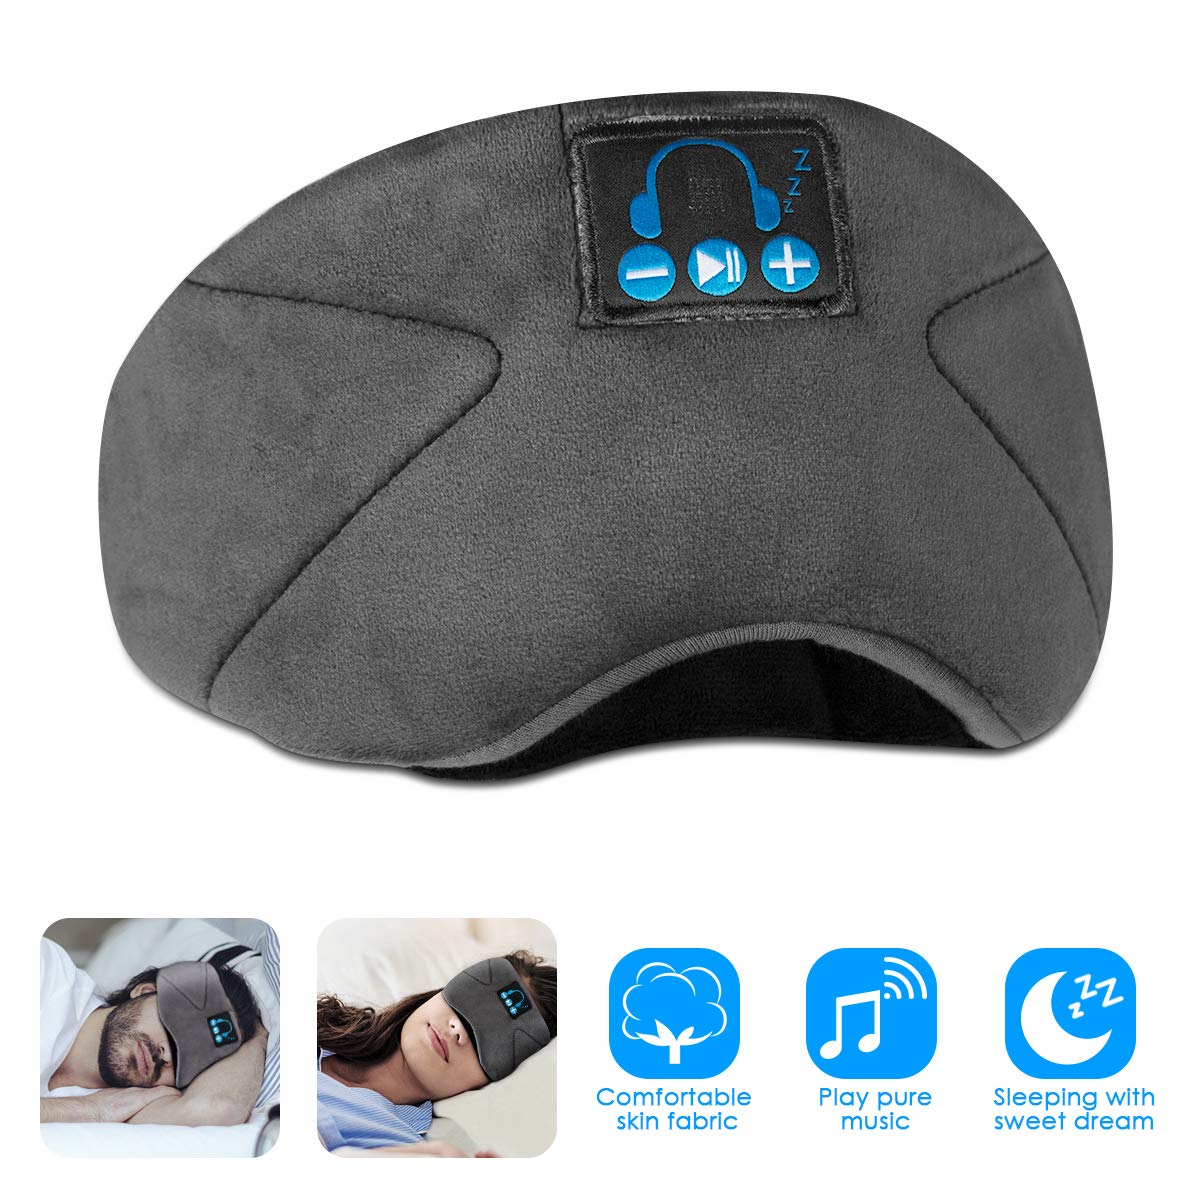 SOONHUA Bluetooth Eye Mask for Sleeping, Wireless Sleep Headphones Headband Bluetooth 5.0, for Running with Built-in Microphone Ultra-Thin Speakers,for Side Sleepers (Gray)